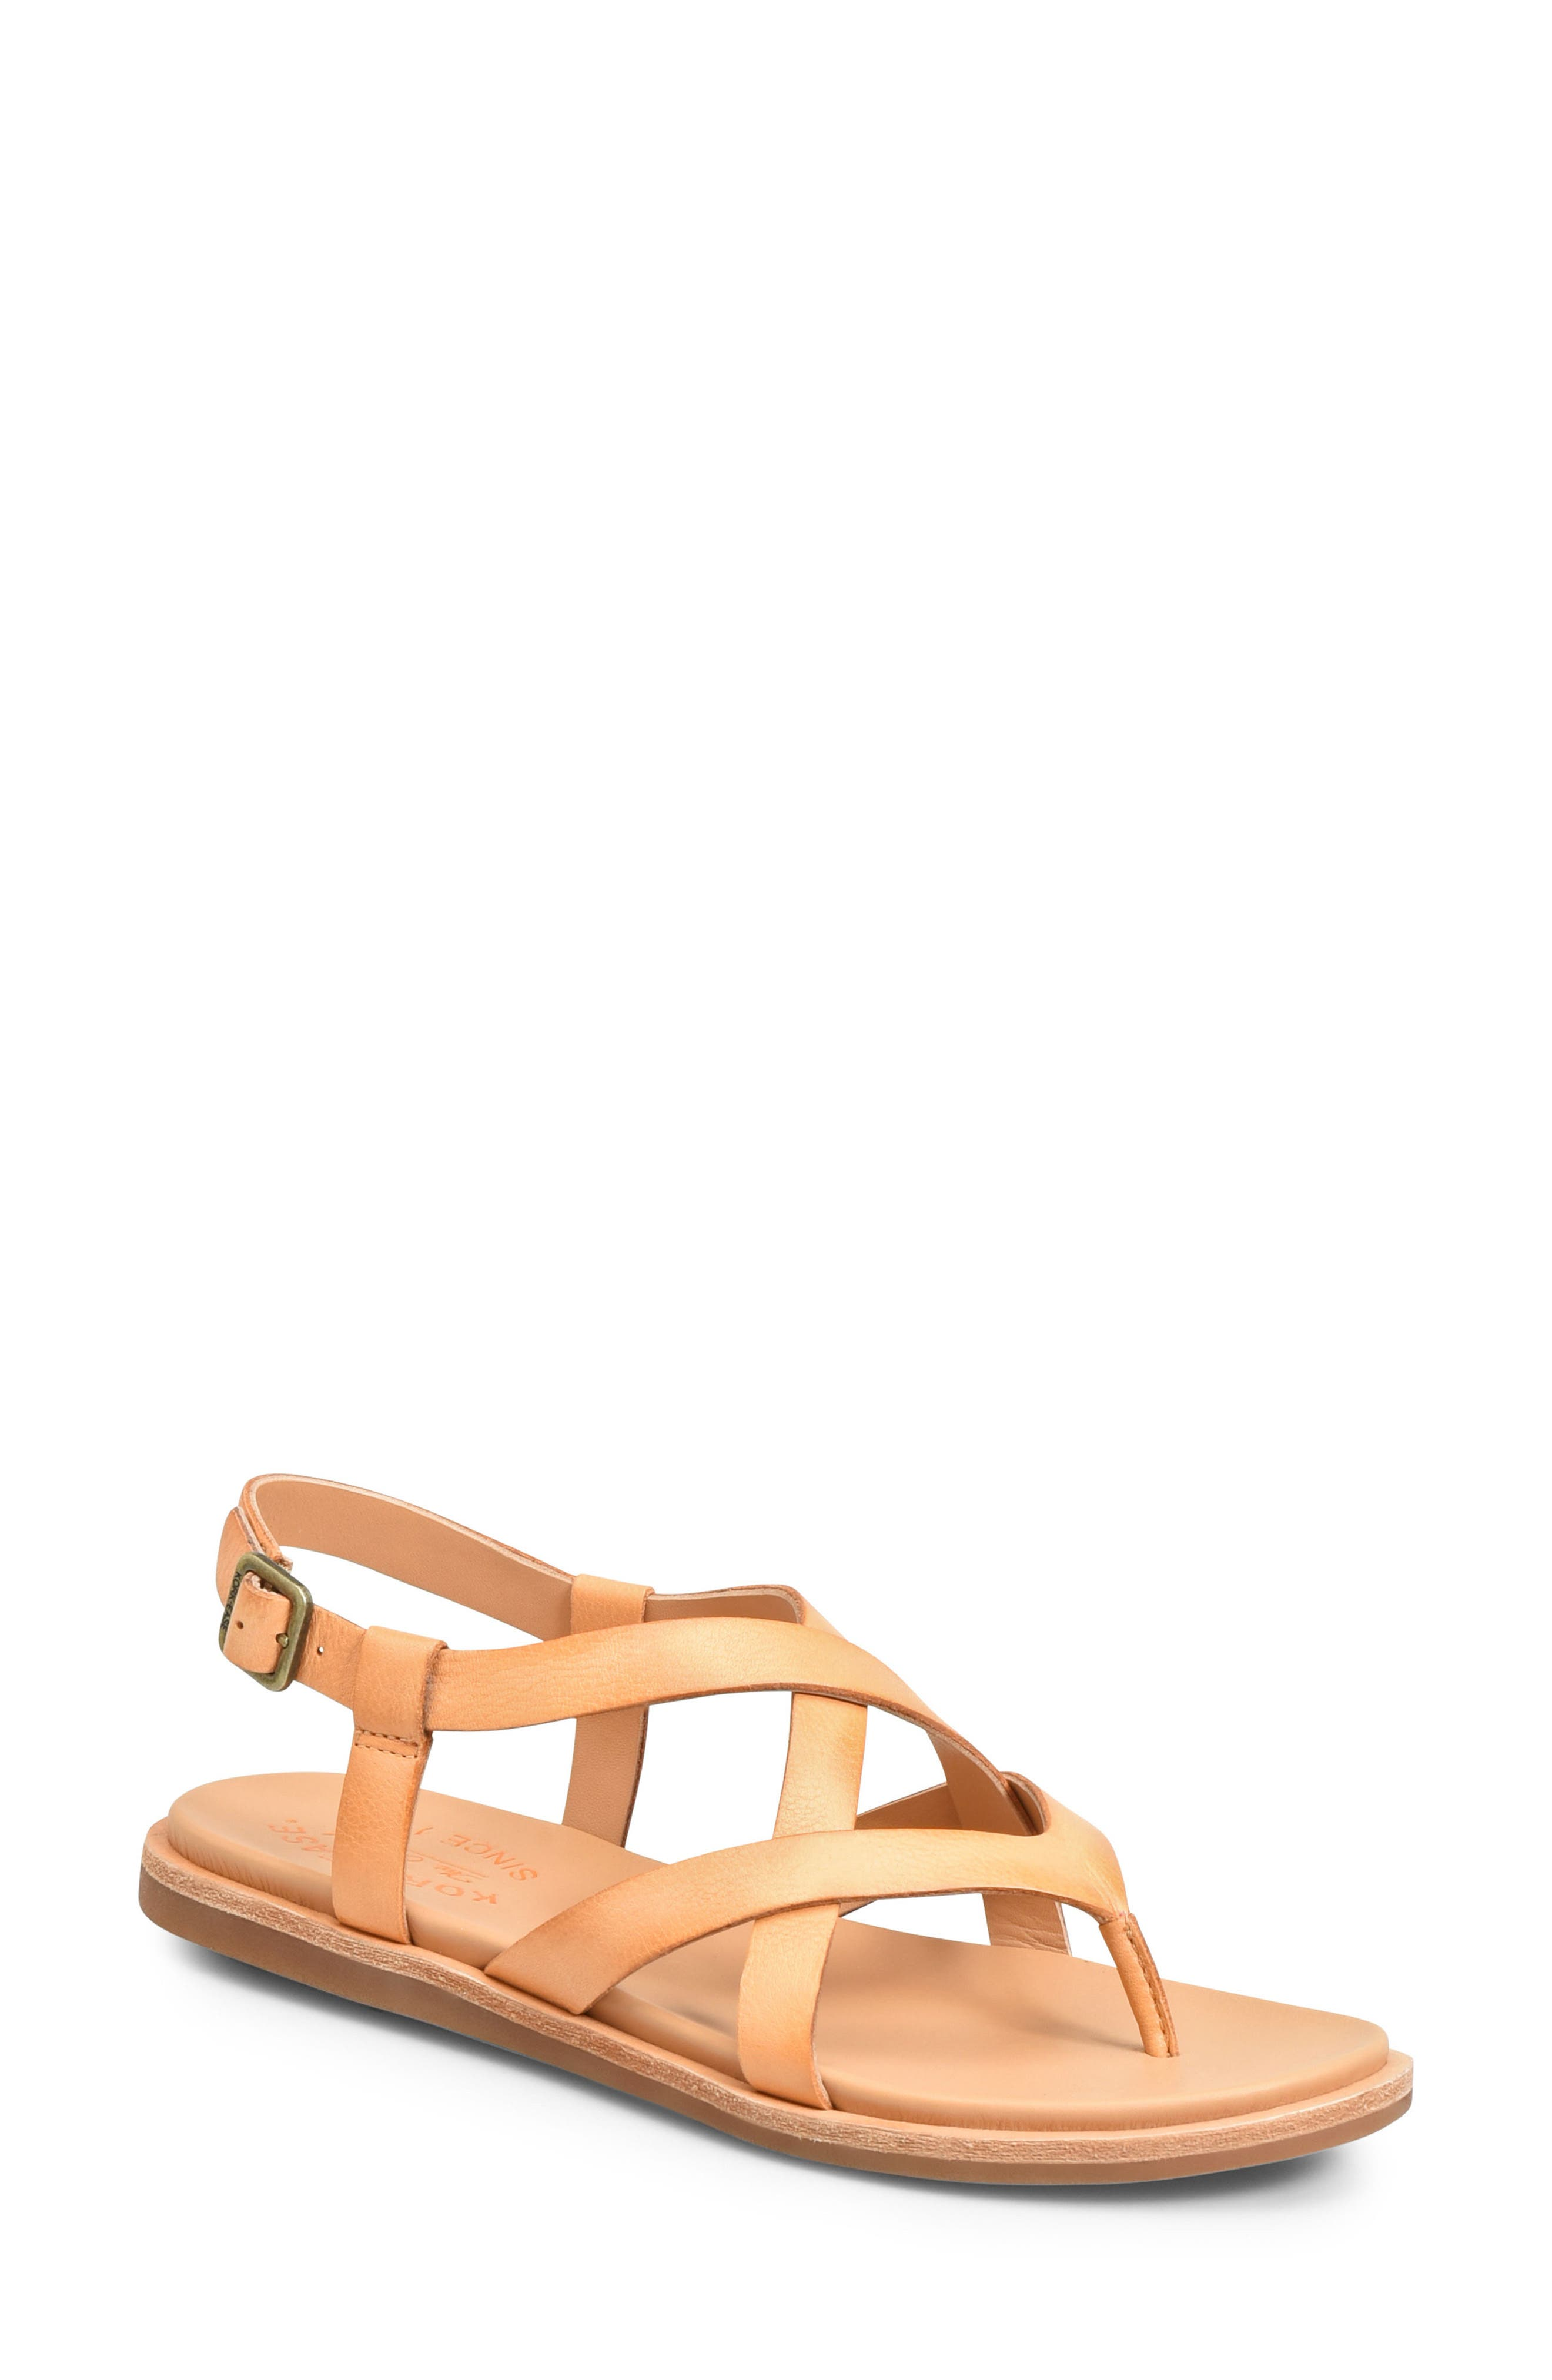 Yarbrough Sandal,                             Main thumbnail 1, color,                             ORANGE LEATHER